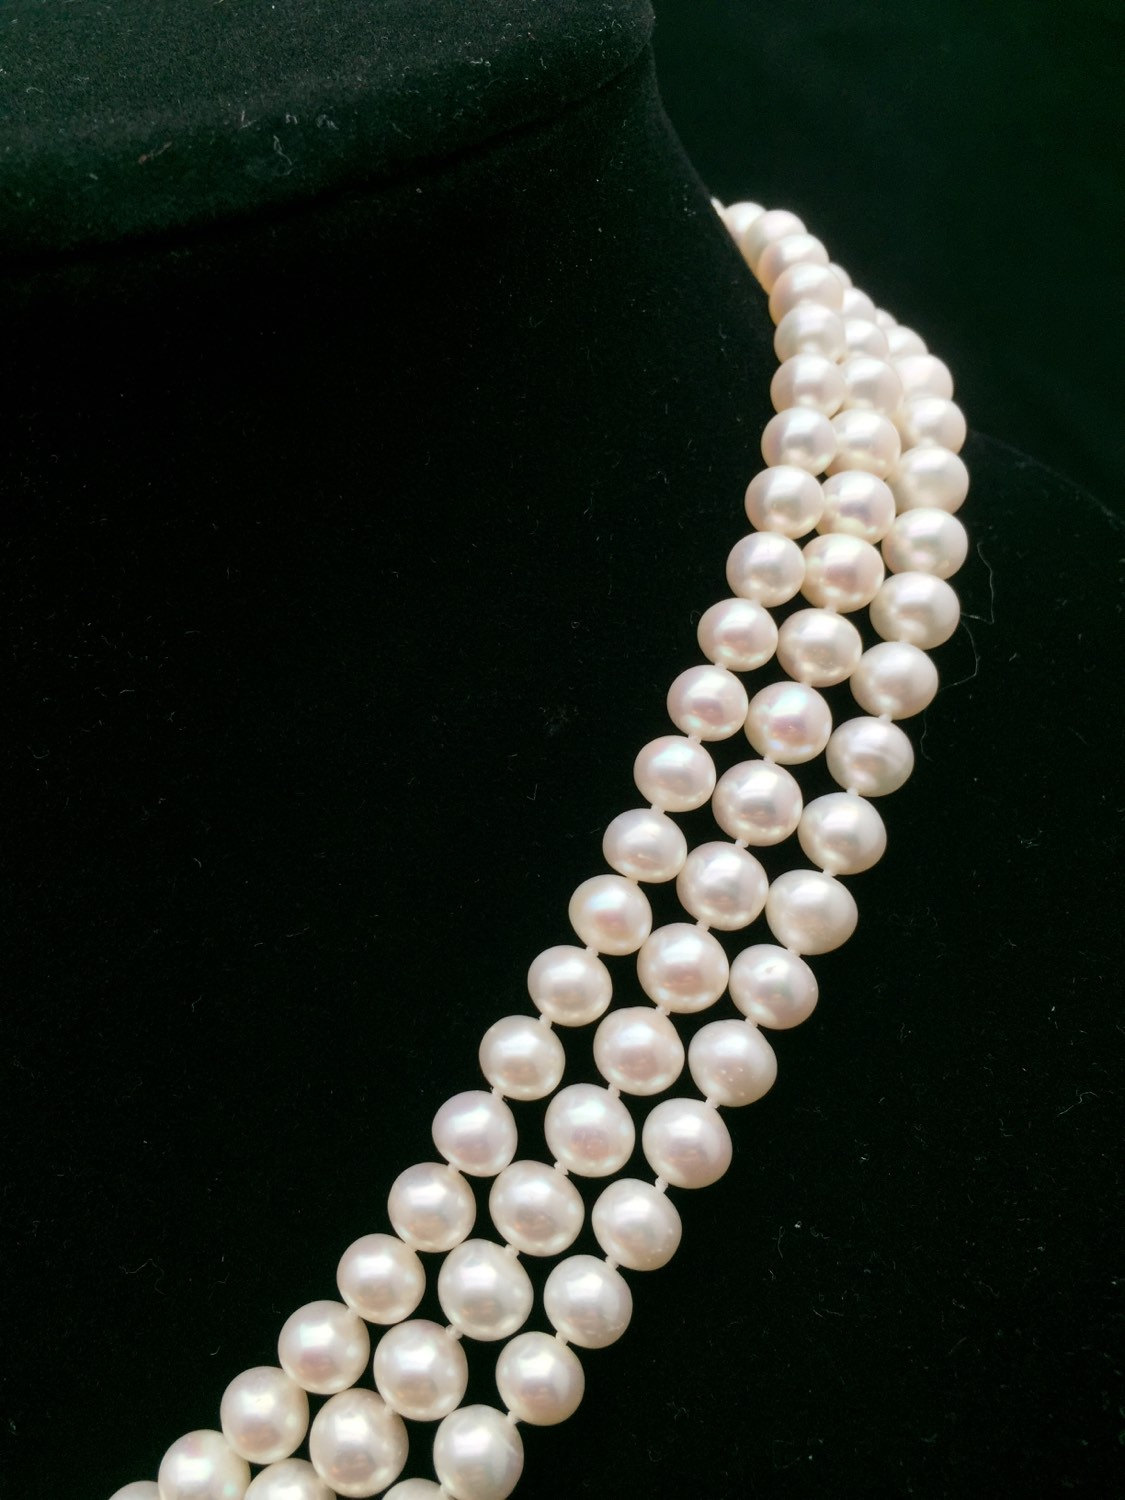 Long Pearl Necklace, Genuine Pearl Necklace, 60 Inches, Aaa Pearl  Necklace, Opera